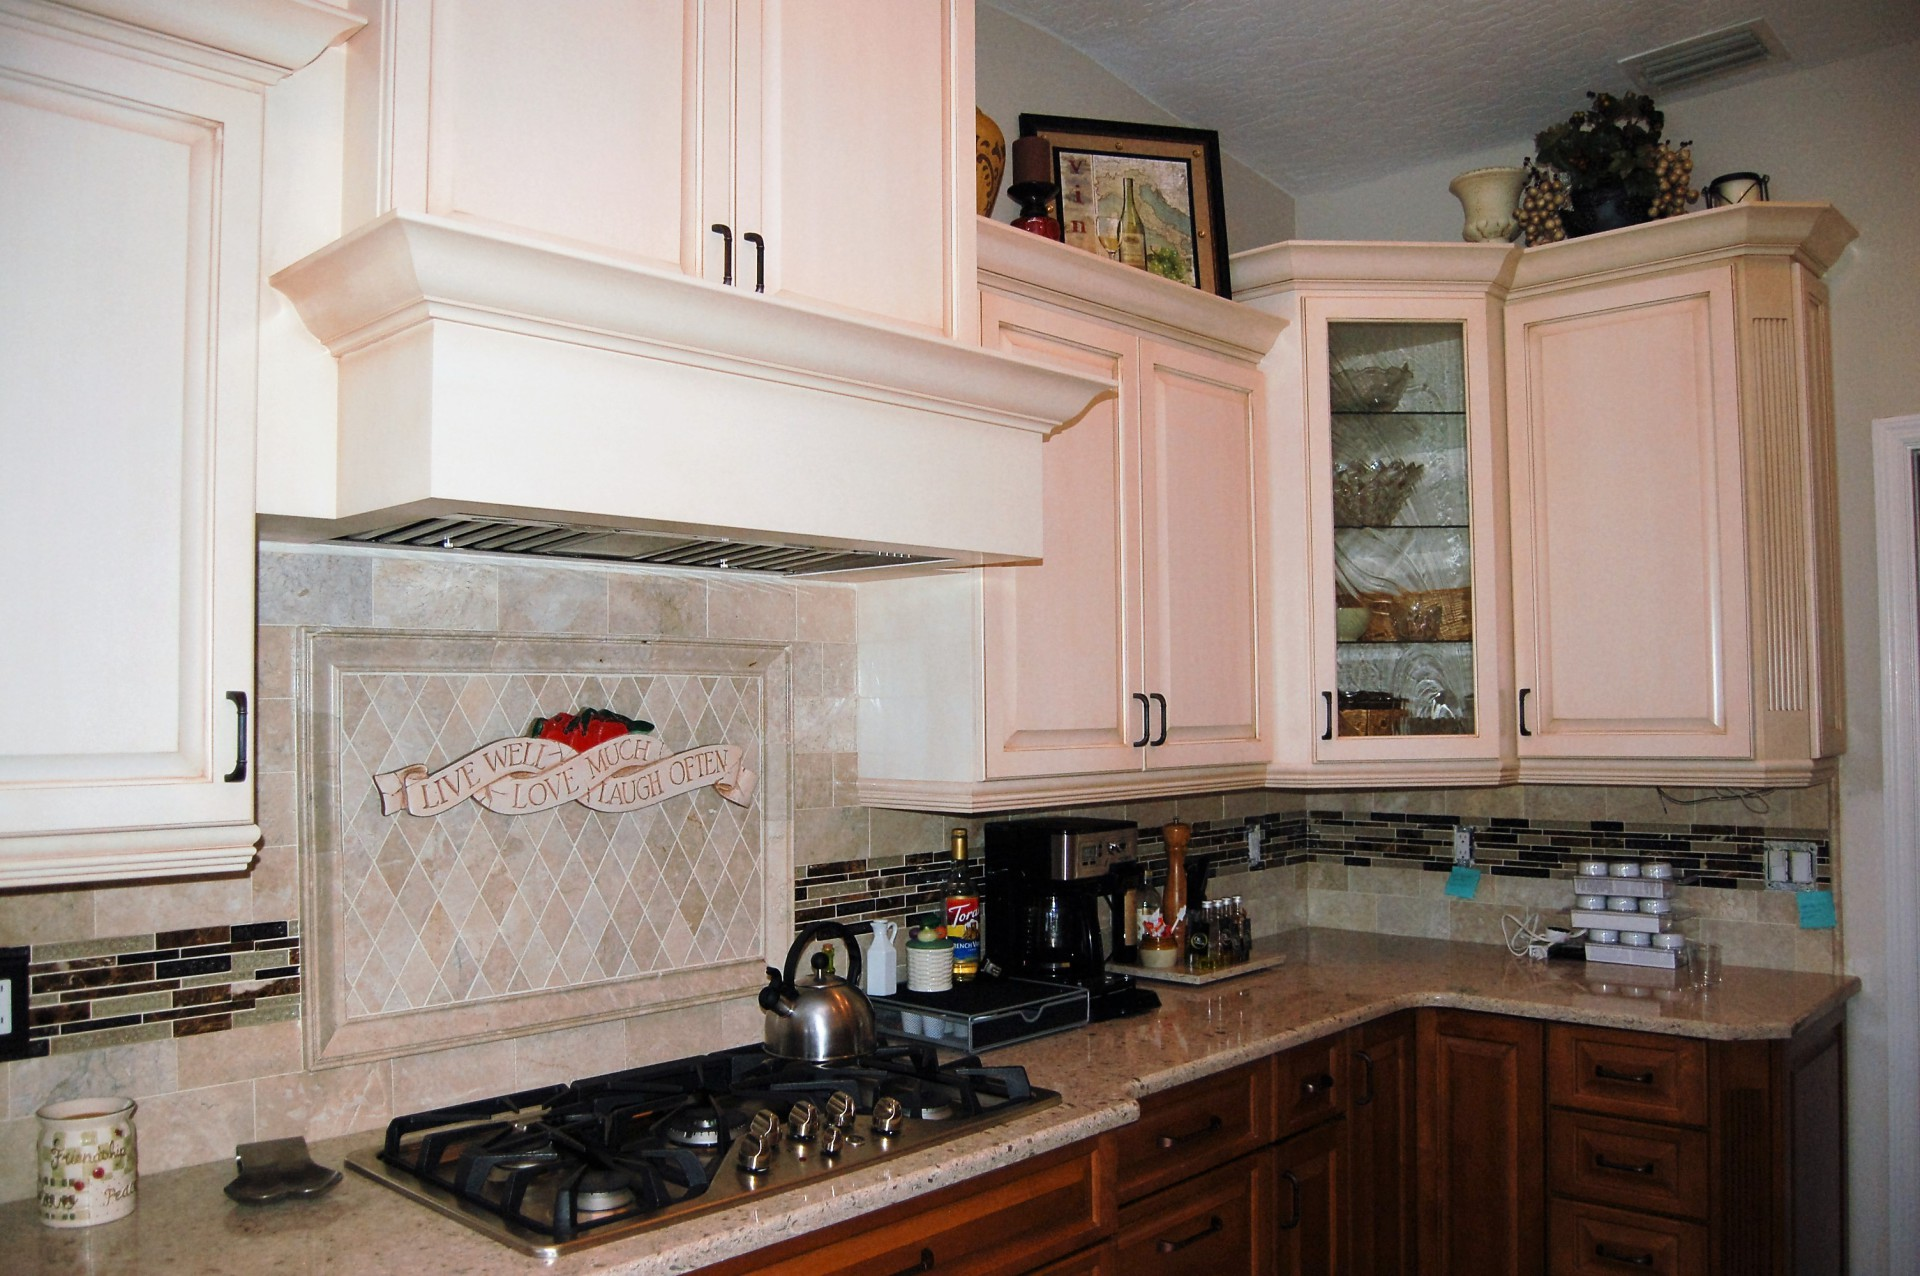 Cream cabinets, tile back splash, travertine back splash, tuscan style kitchen, 2 toned kitchen, crown modeling, fluted trim